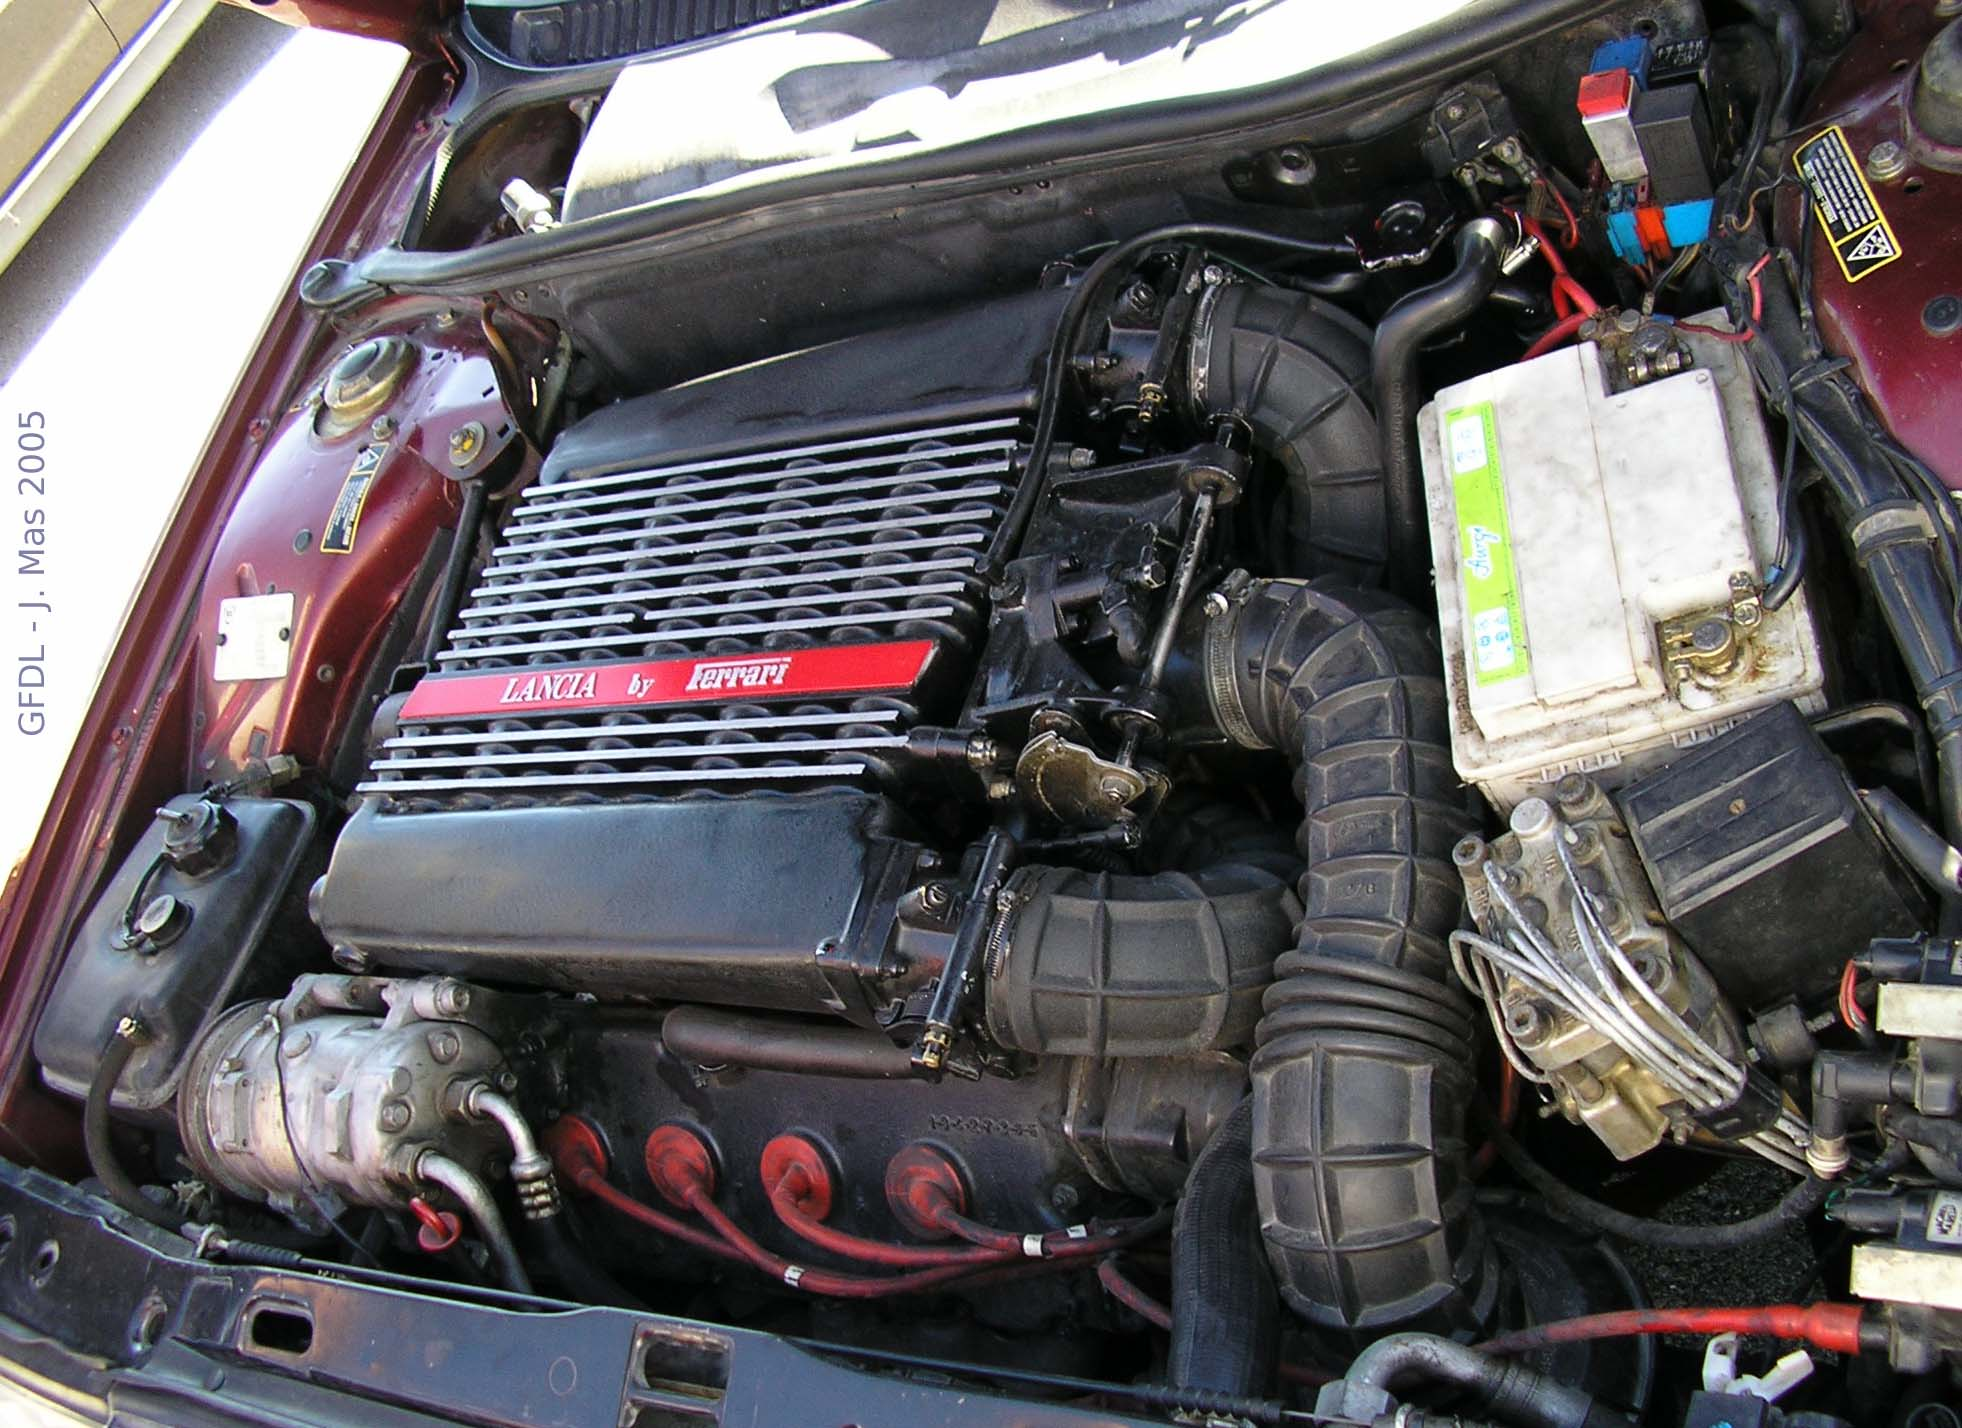 datei:lancia thema 8.32 engine – wikipedia